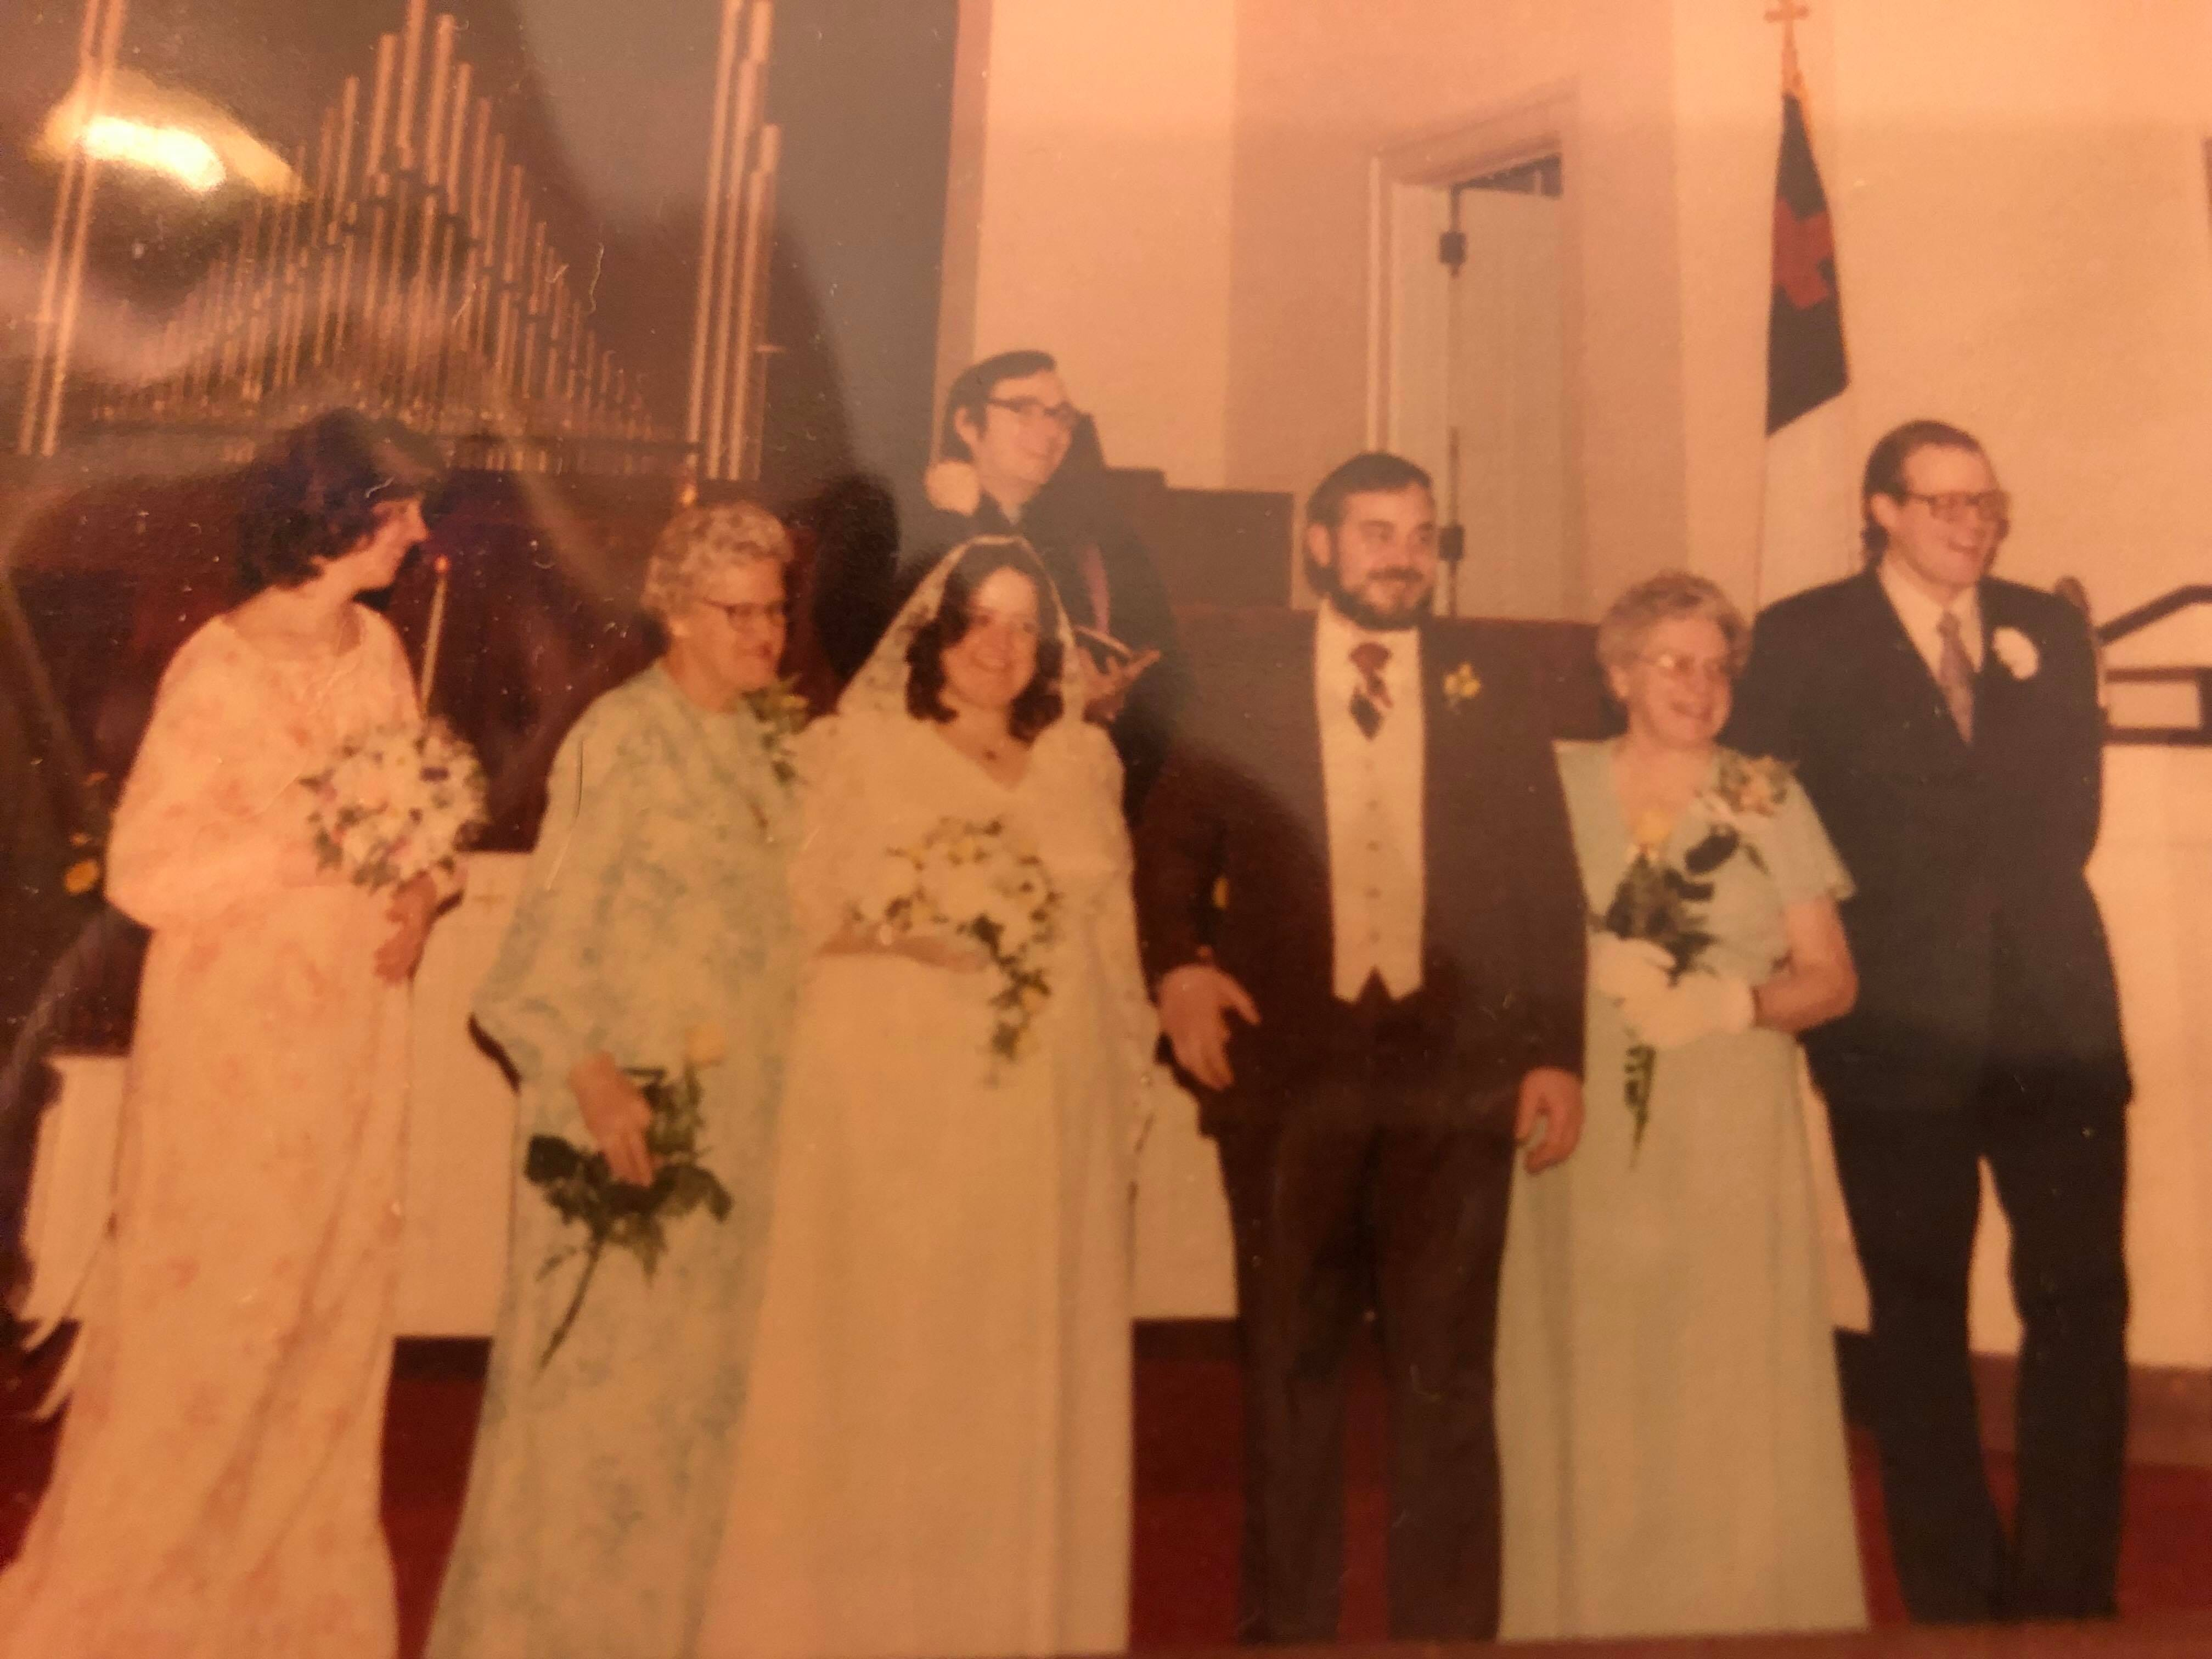 "Richard and Elinor (Hendee) Pool on  March 11th, 1978. They were married at Faith United Methodist Church in Sheboygan Falls, Wis.   From their daughter Samantha:  ""Both of my parents were volunteers at The Sheboygan Community Players (now known as The Sheboygan Theatre Company).   For the Christmas show in 1977 they were doing the show ""Babes in Toyland"" and after auditions they still needed a couple of main characters. My father was called and asked to play the role of Barnaby, the stereotypical bad guy figure (Black top-hat, Black cape, handlebar mustache) and my mother's as called and asked to play The Widow Piper (the female lead's mother).  On the first day of rehearsals (October 12th, 1977), my mother was running down the steps in the auditorium to the stage, tripped and fell, skidded across the stage and landed at my father's feet. That's how they met.   He likes to say she fell for him.   They started dating during rehearsals and by opening night, Dec. 1, 1977, they were engaged."""